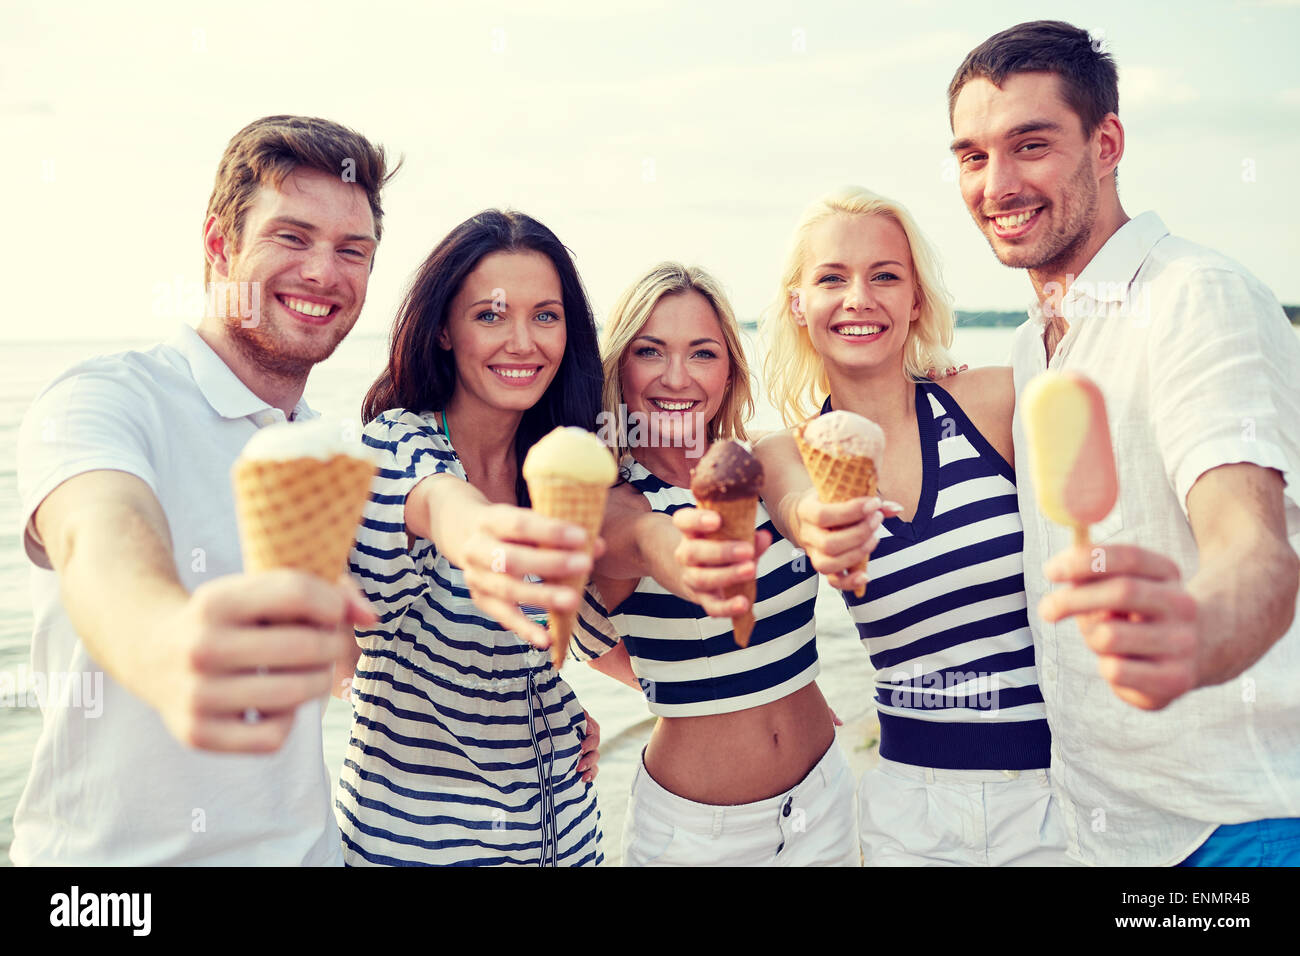 Smiling friends eating ice cream on beach Banque D'Images